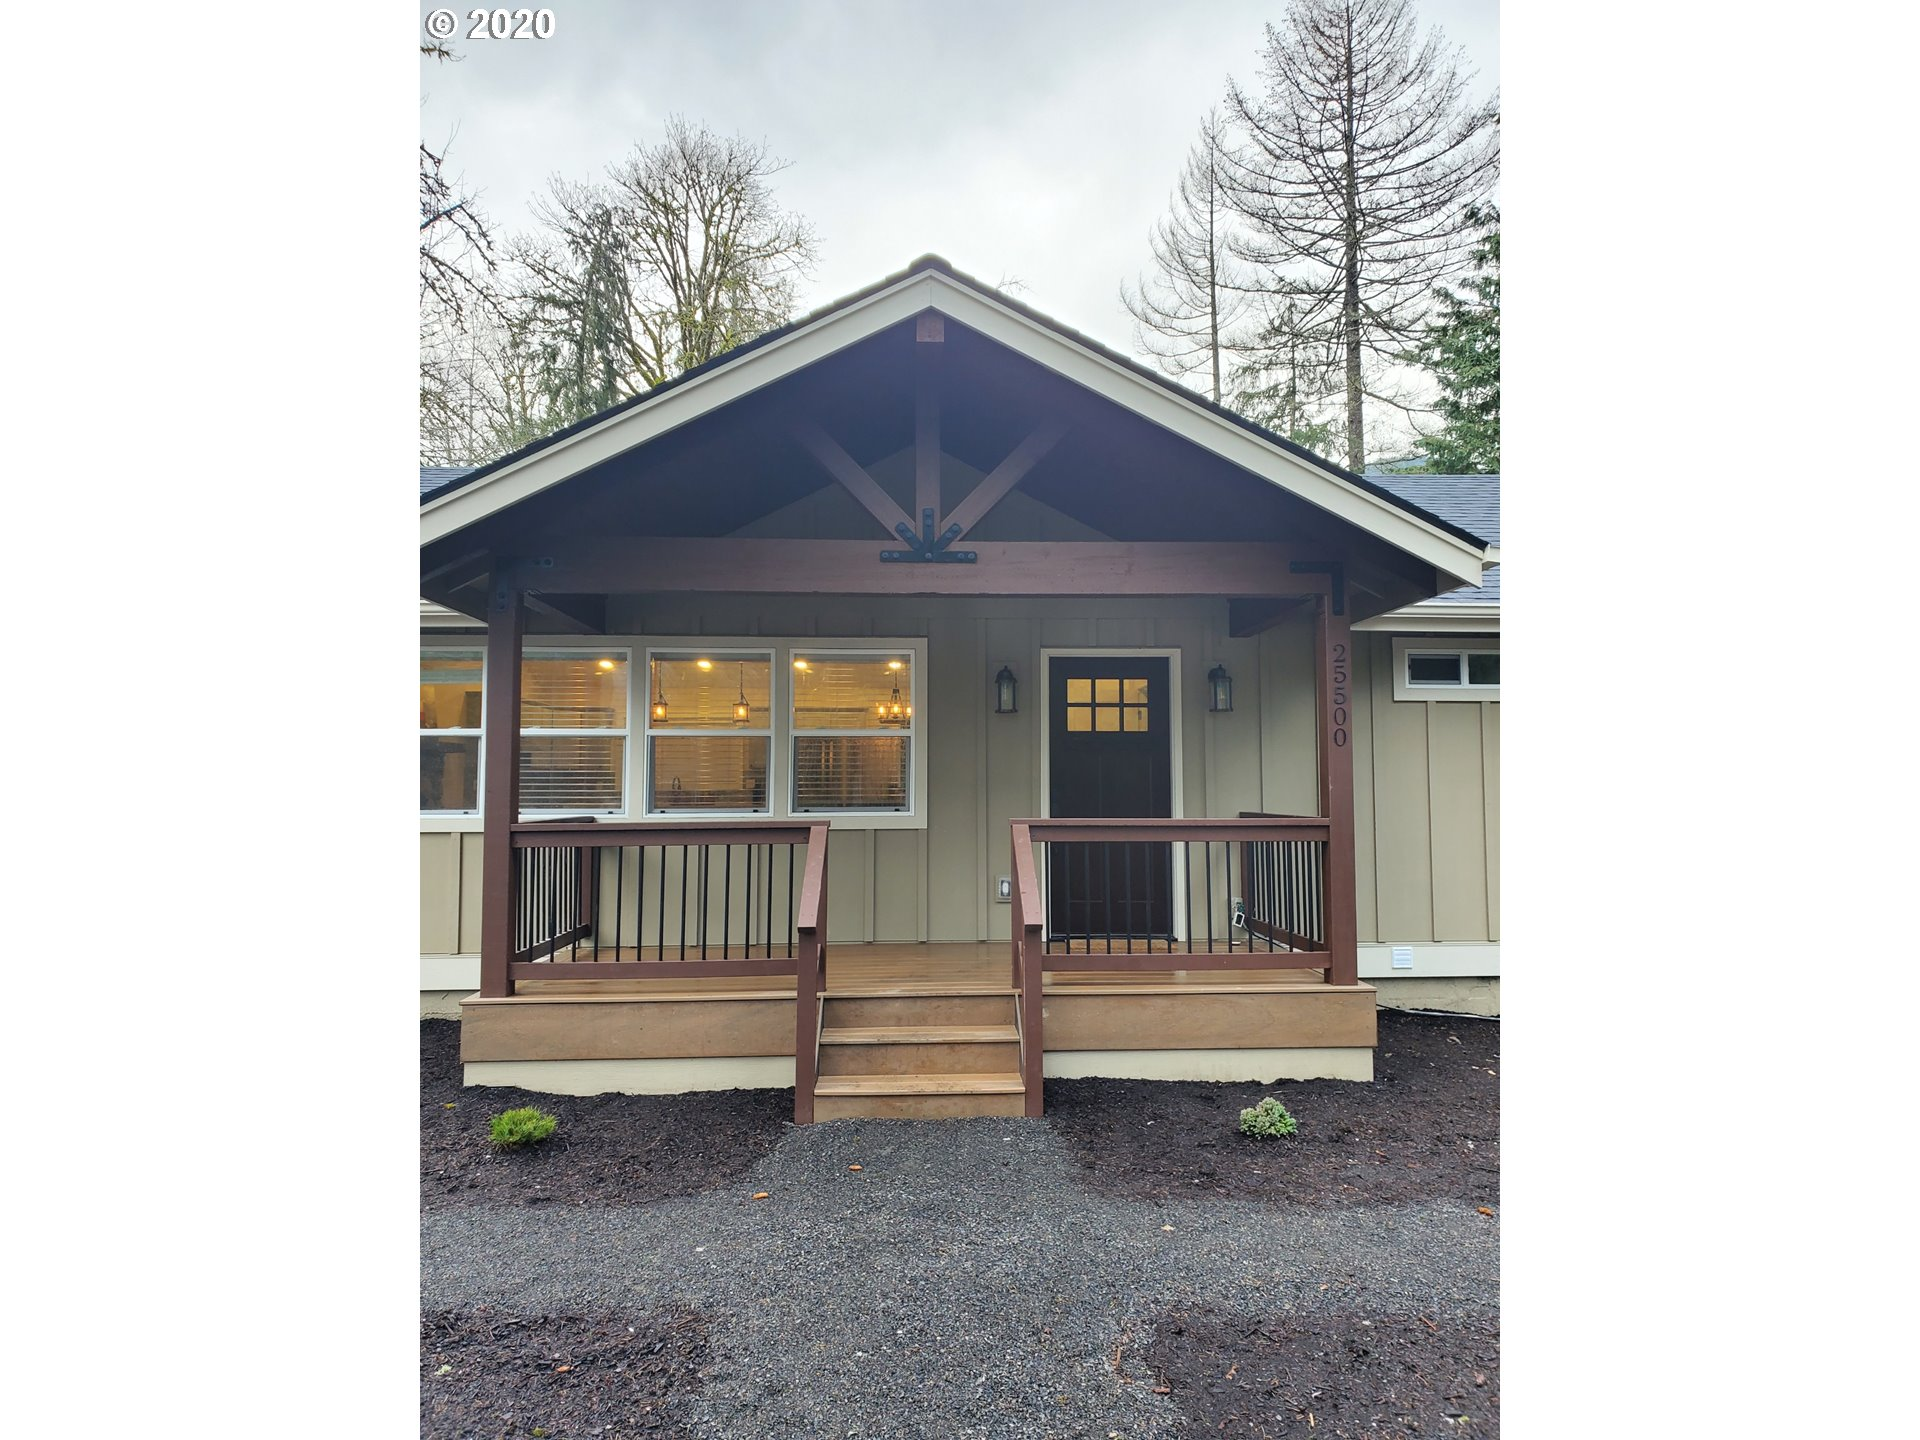 Great location for your mountain retreat! Located conveniently close to shopping, skiing, rivers, hiking, all the mountain activities. This 3 bed 2 bath home has been totally remodeled. Vaulted ceilings with exposed beams, fire place, SS appliances and a totally private backyard.